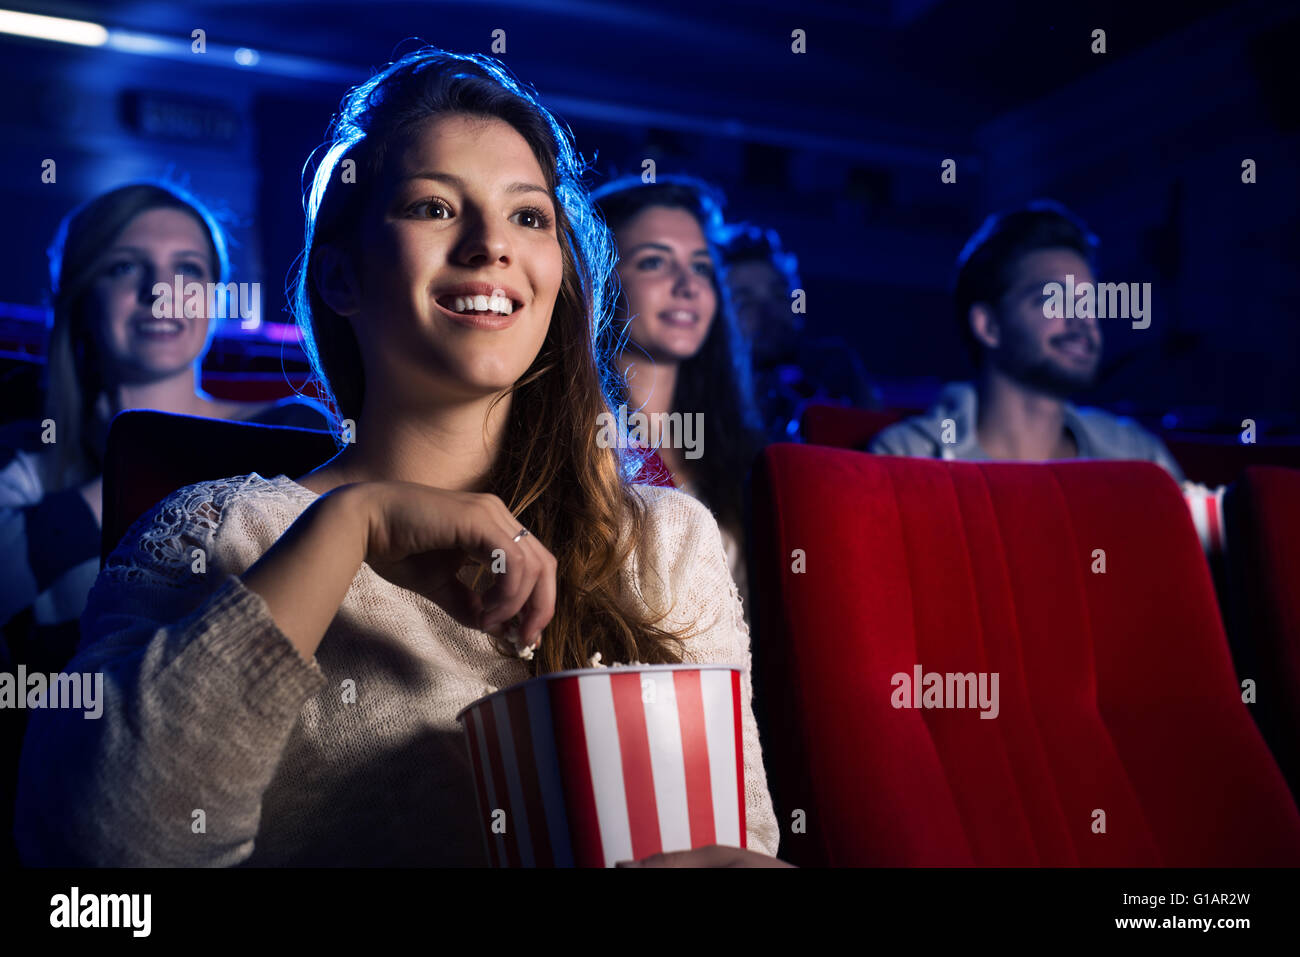 Young smiling woman watching a film in the movie theater and eating popcorn, entertainment and cinema concept - Stock Image